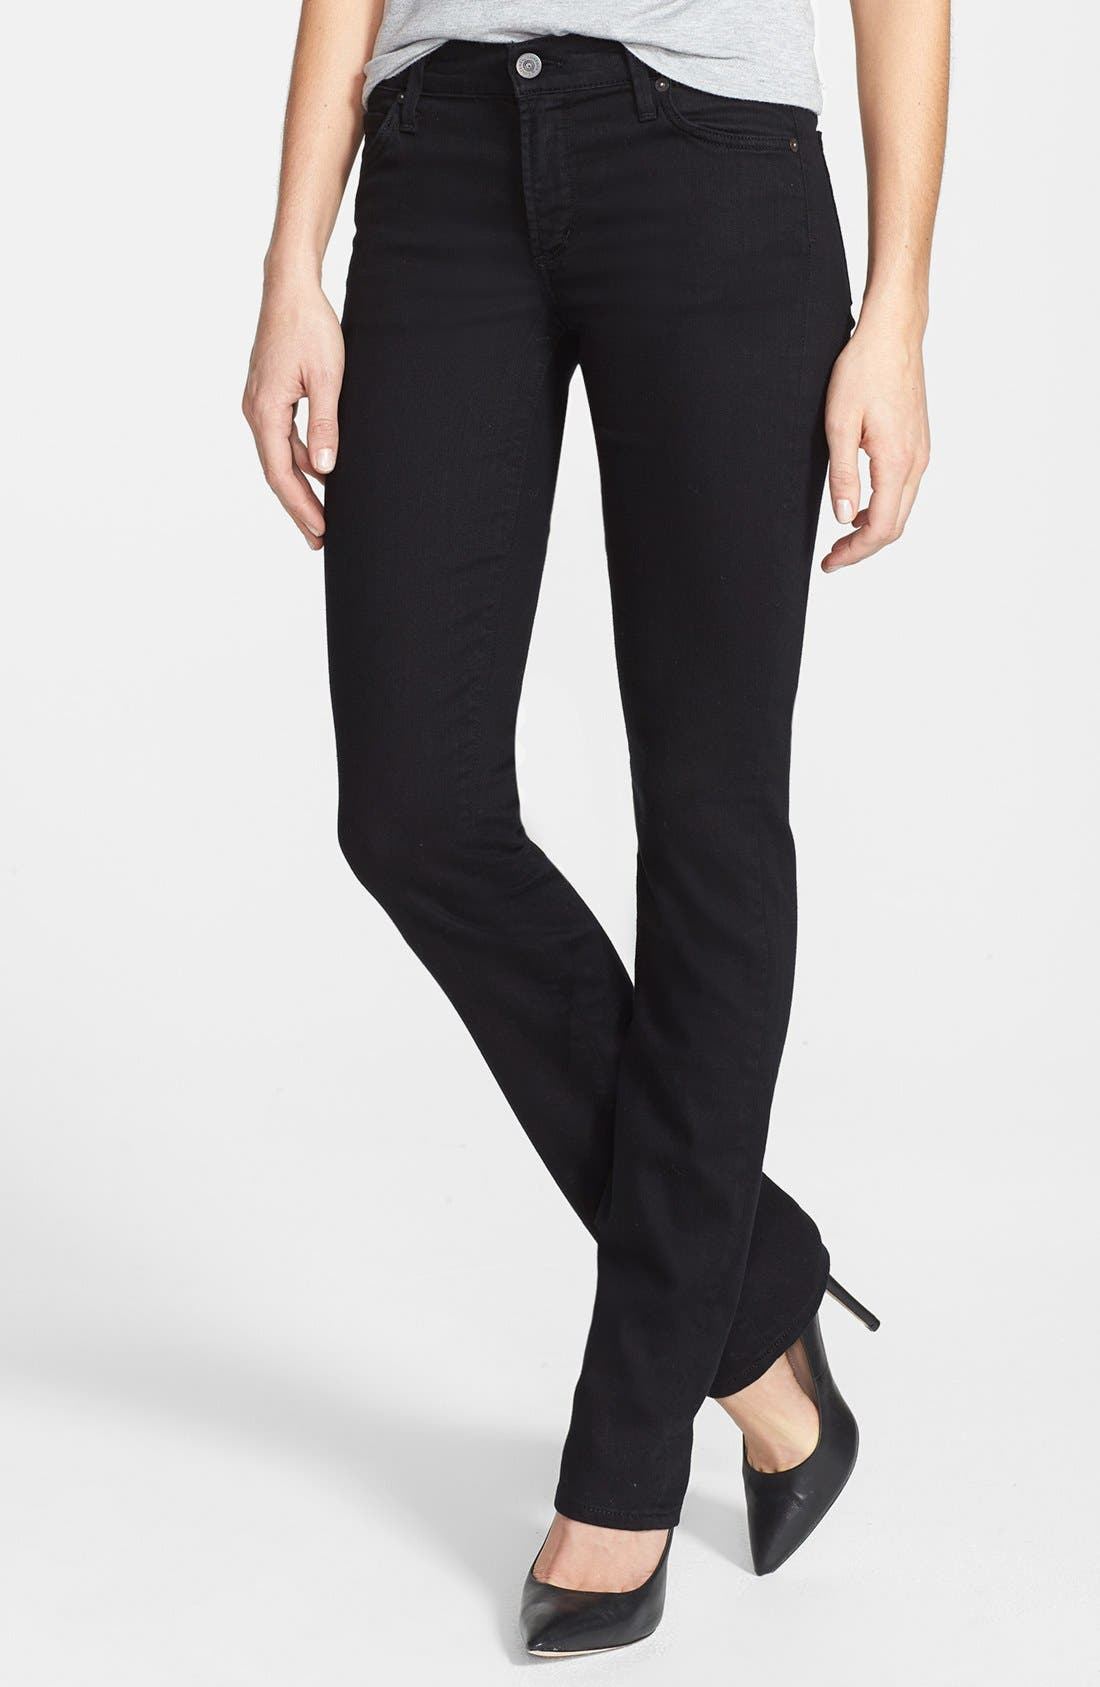 Alternate Image 1 Selected - Citizens of Humanity 'Ava' Straight Leg Jeans (Black Diamond)